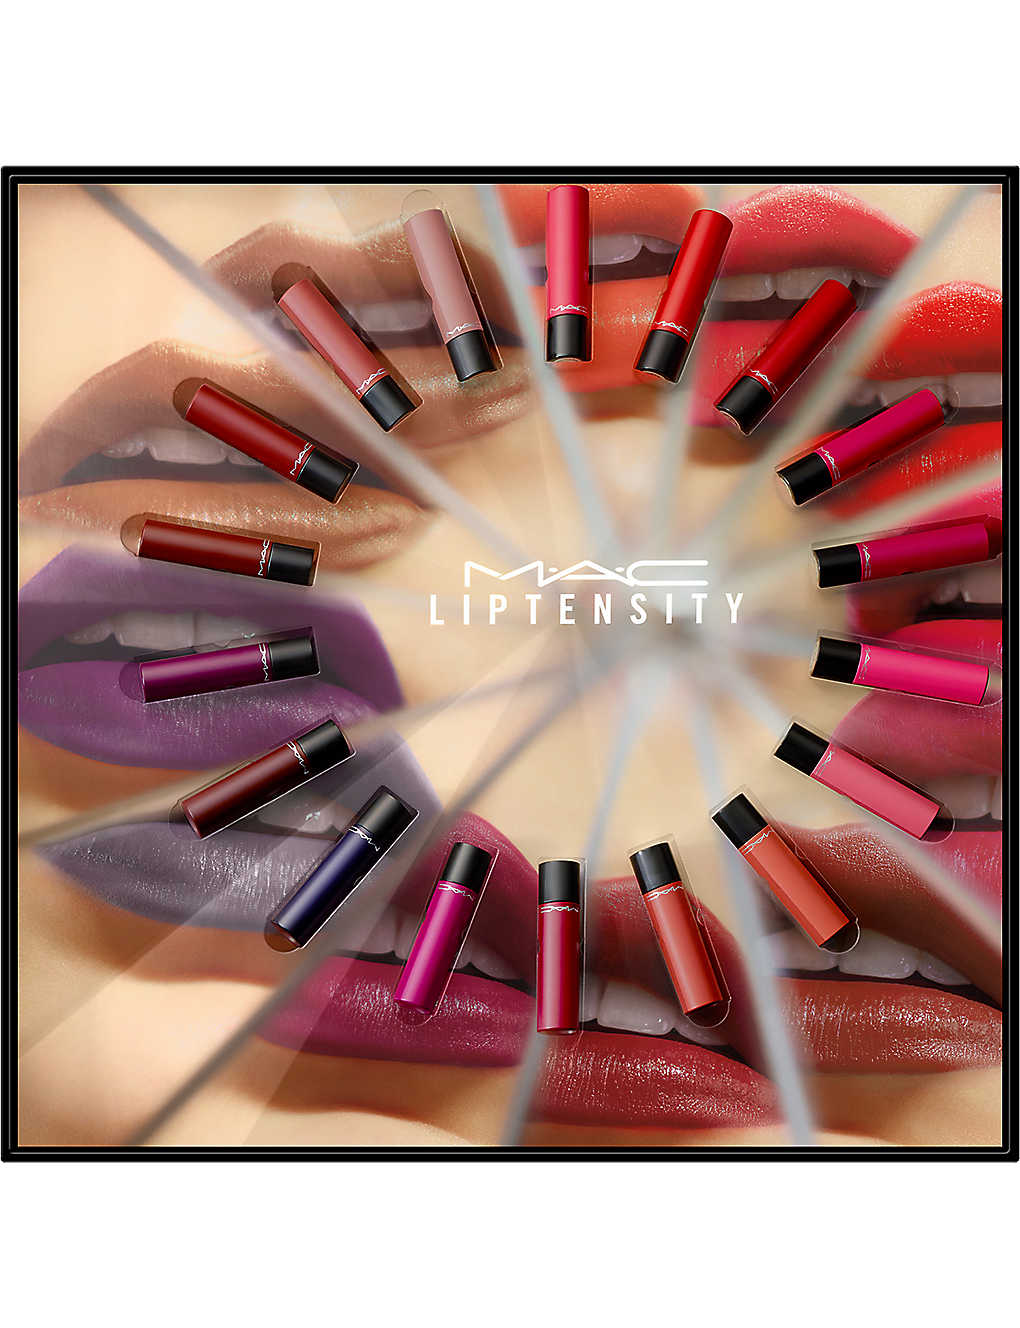 MAC: Liptensity lipstick collectors set